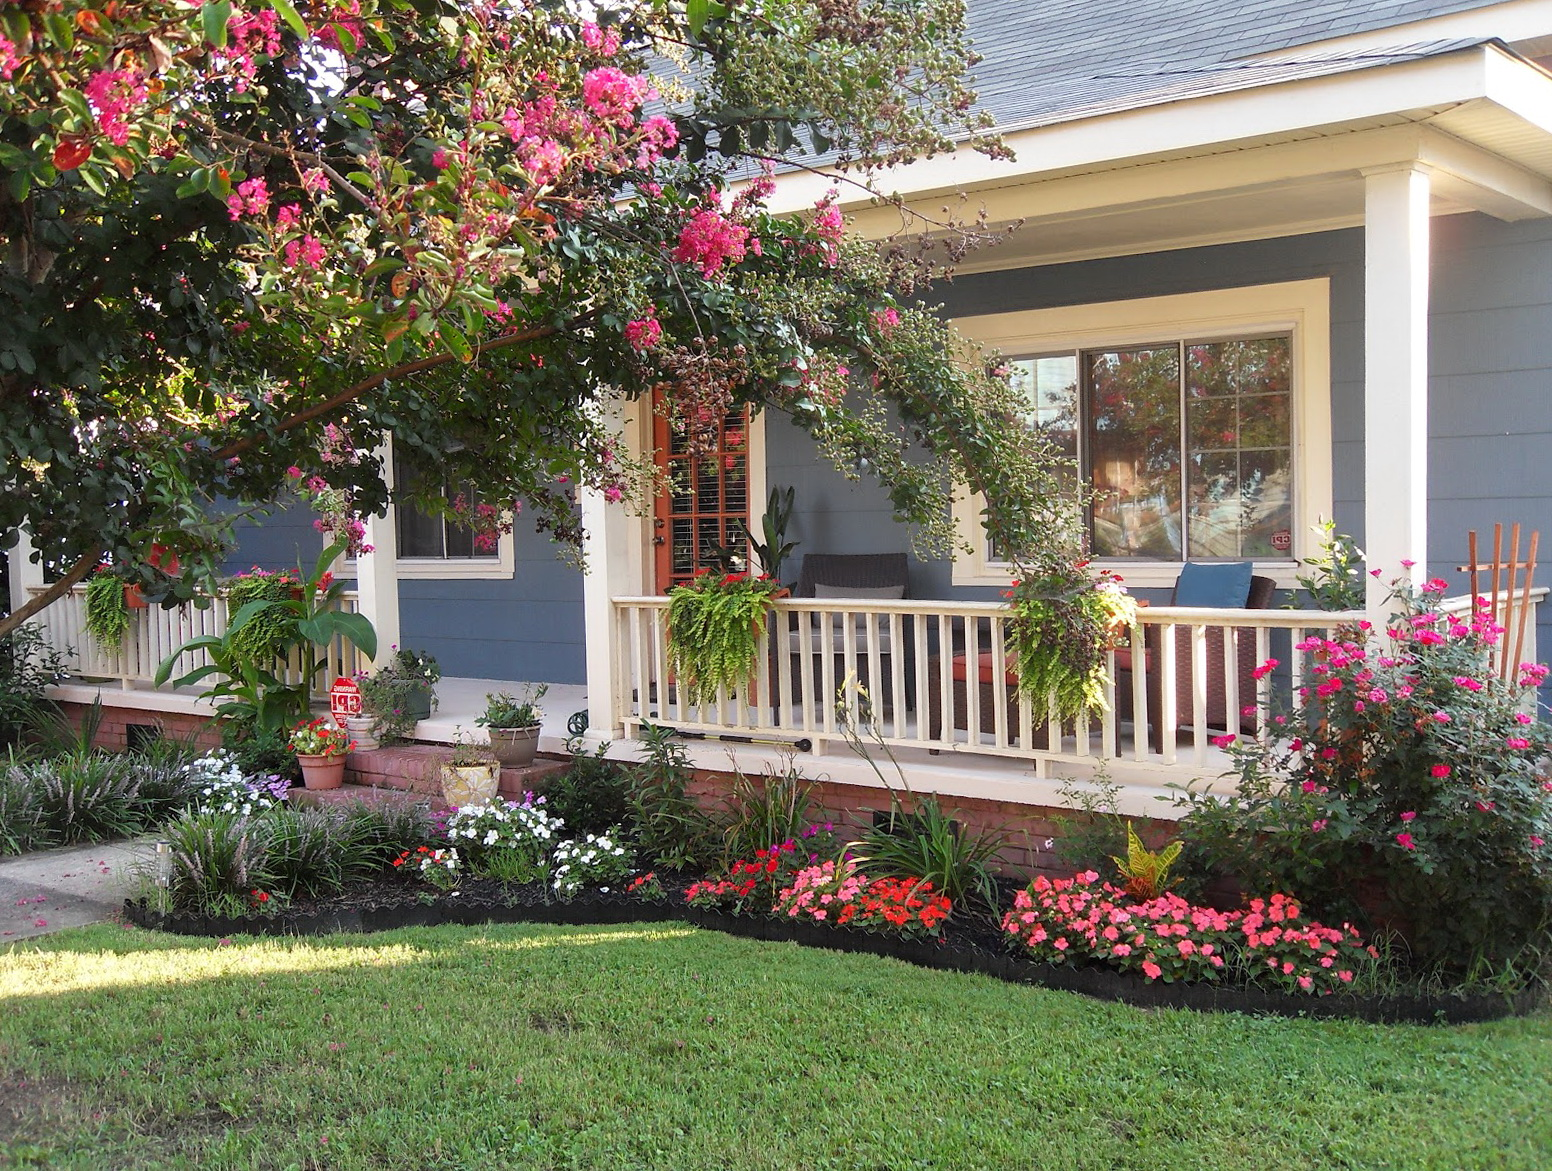 Small Front Porch Garden Ideas - Small Front Porch Garden Ideas Home Design Ideas